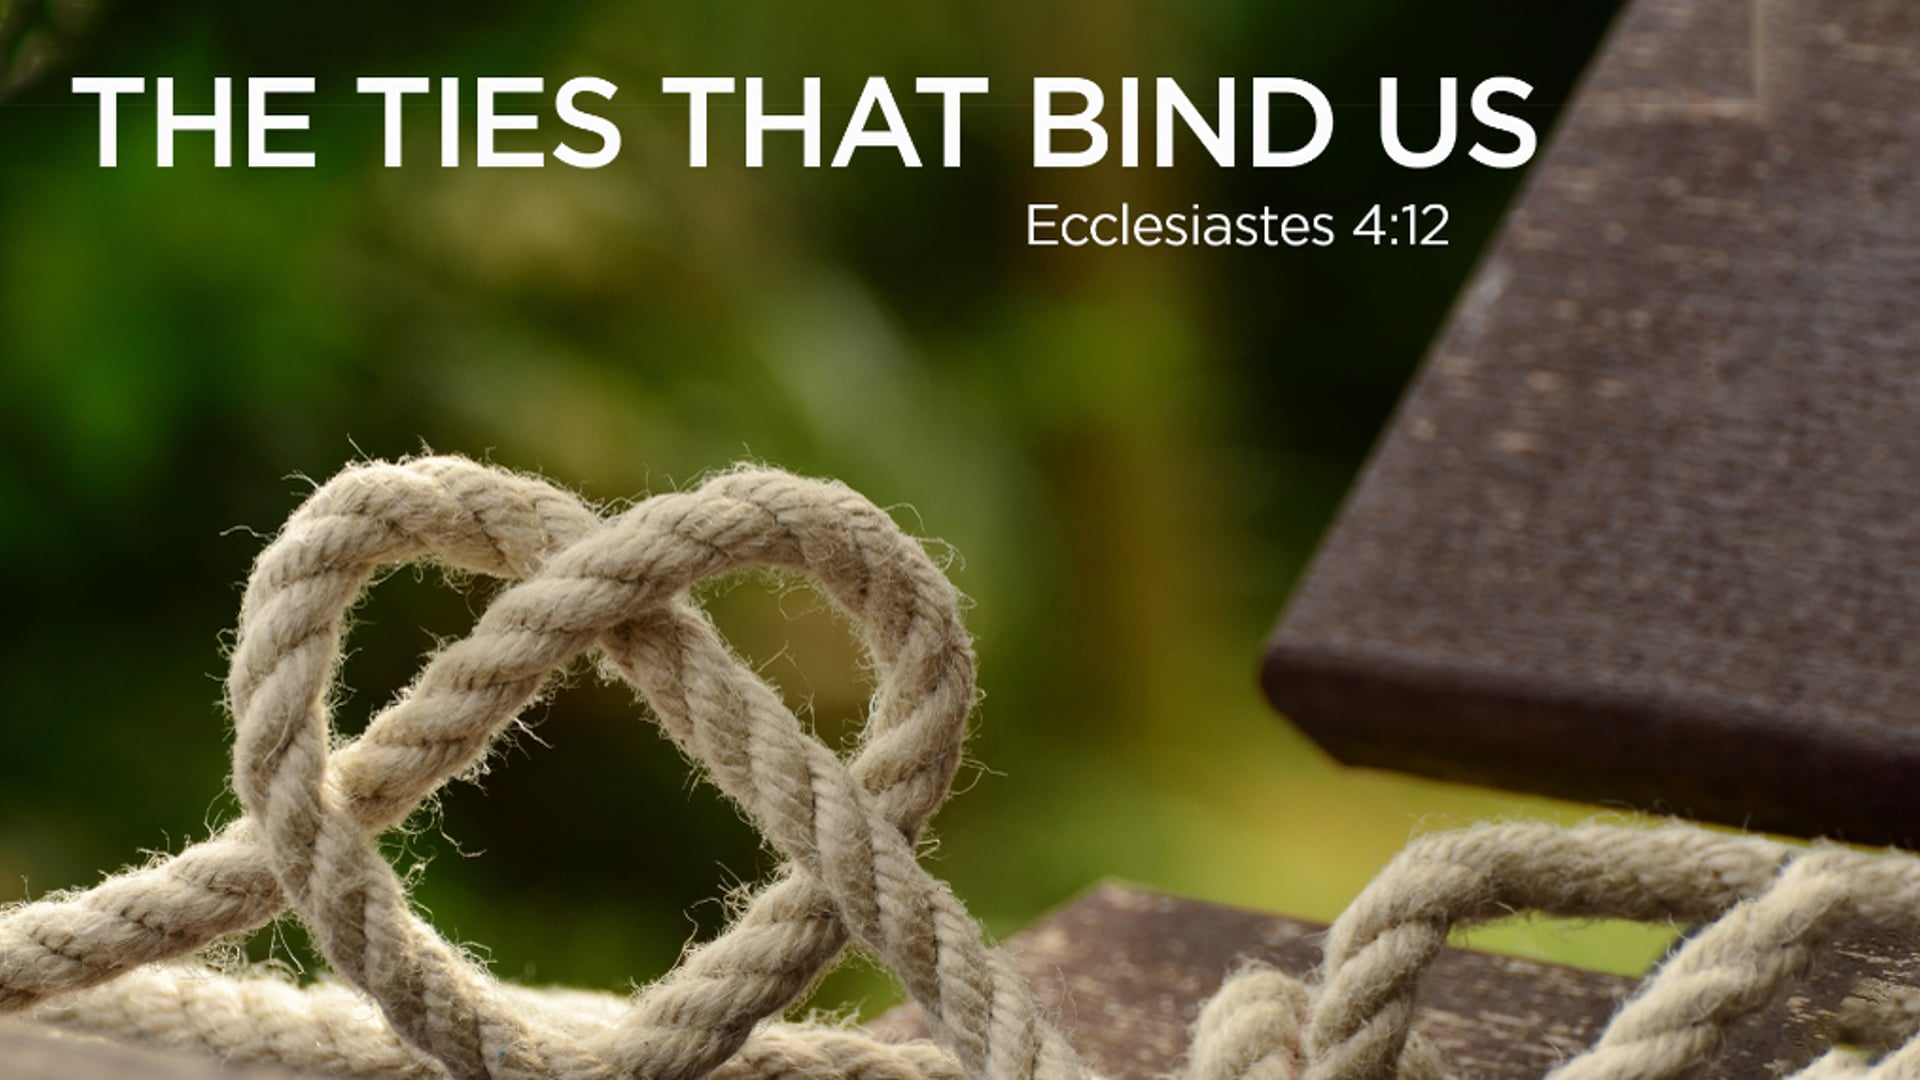 The Ties That Bind Us